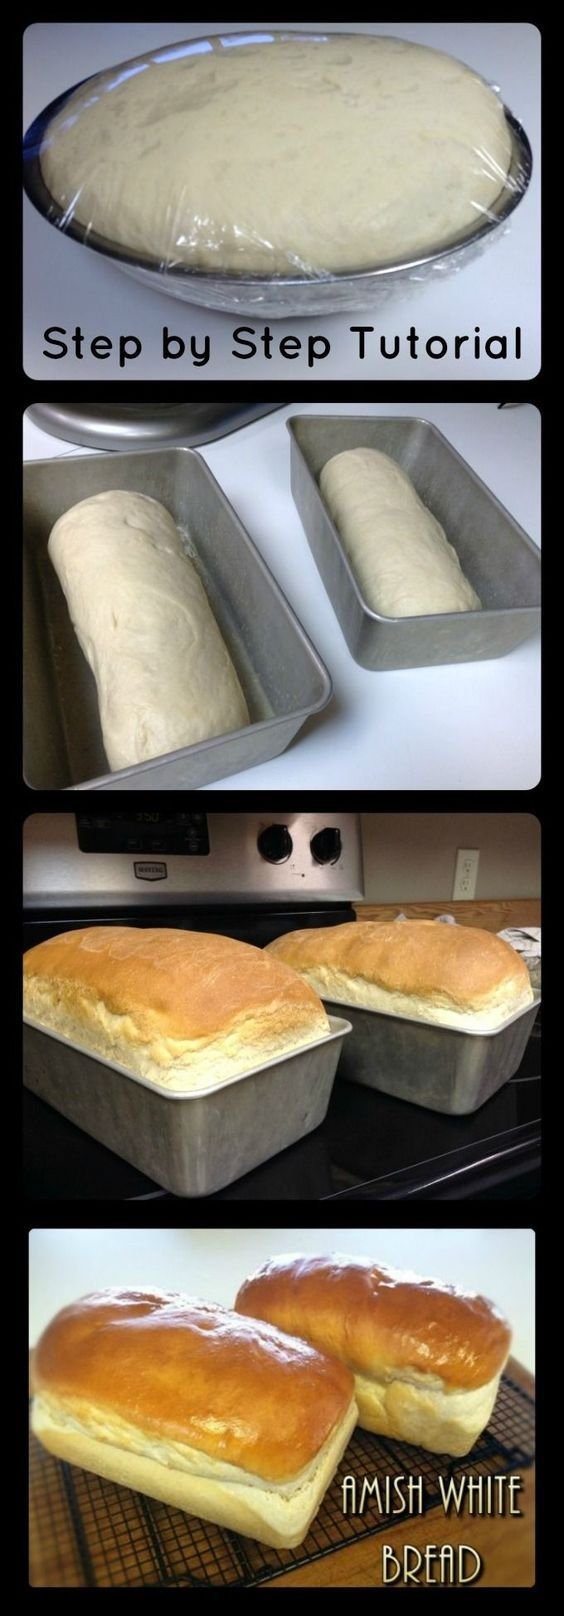 Amish White Bread Step by Step photo tutorial 6 simple ingredient and you have your own homemade bread!...